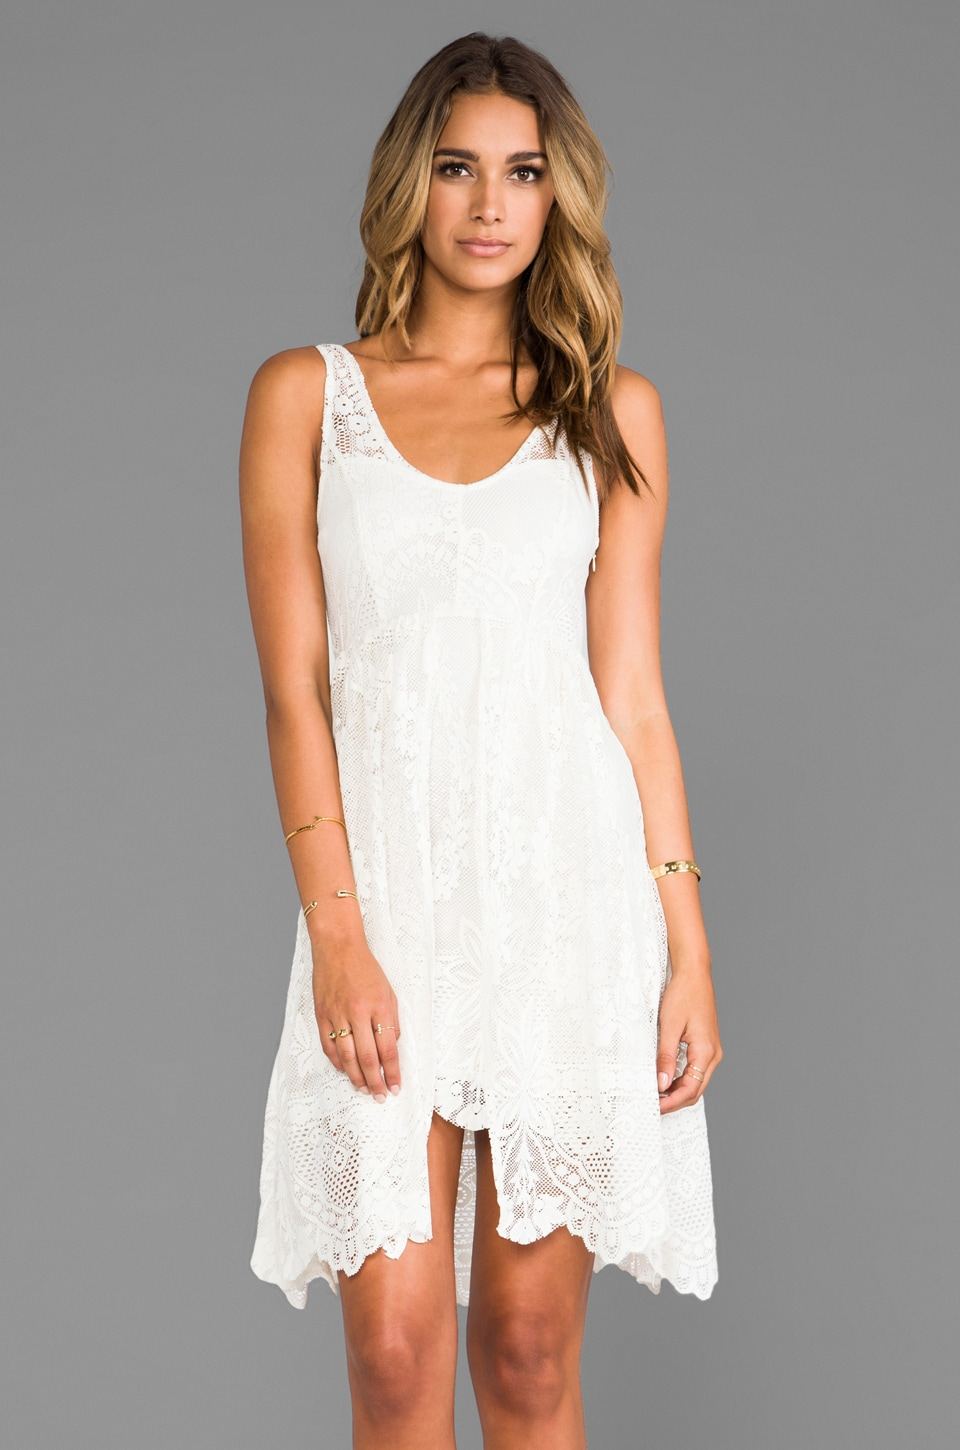 Free People Salinas Foil Print Dress in Ivory